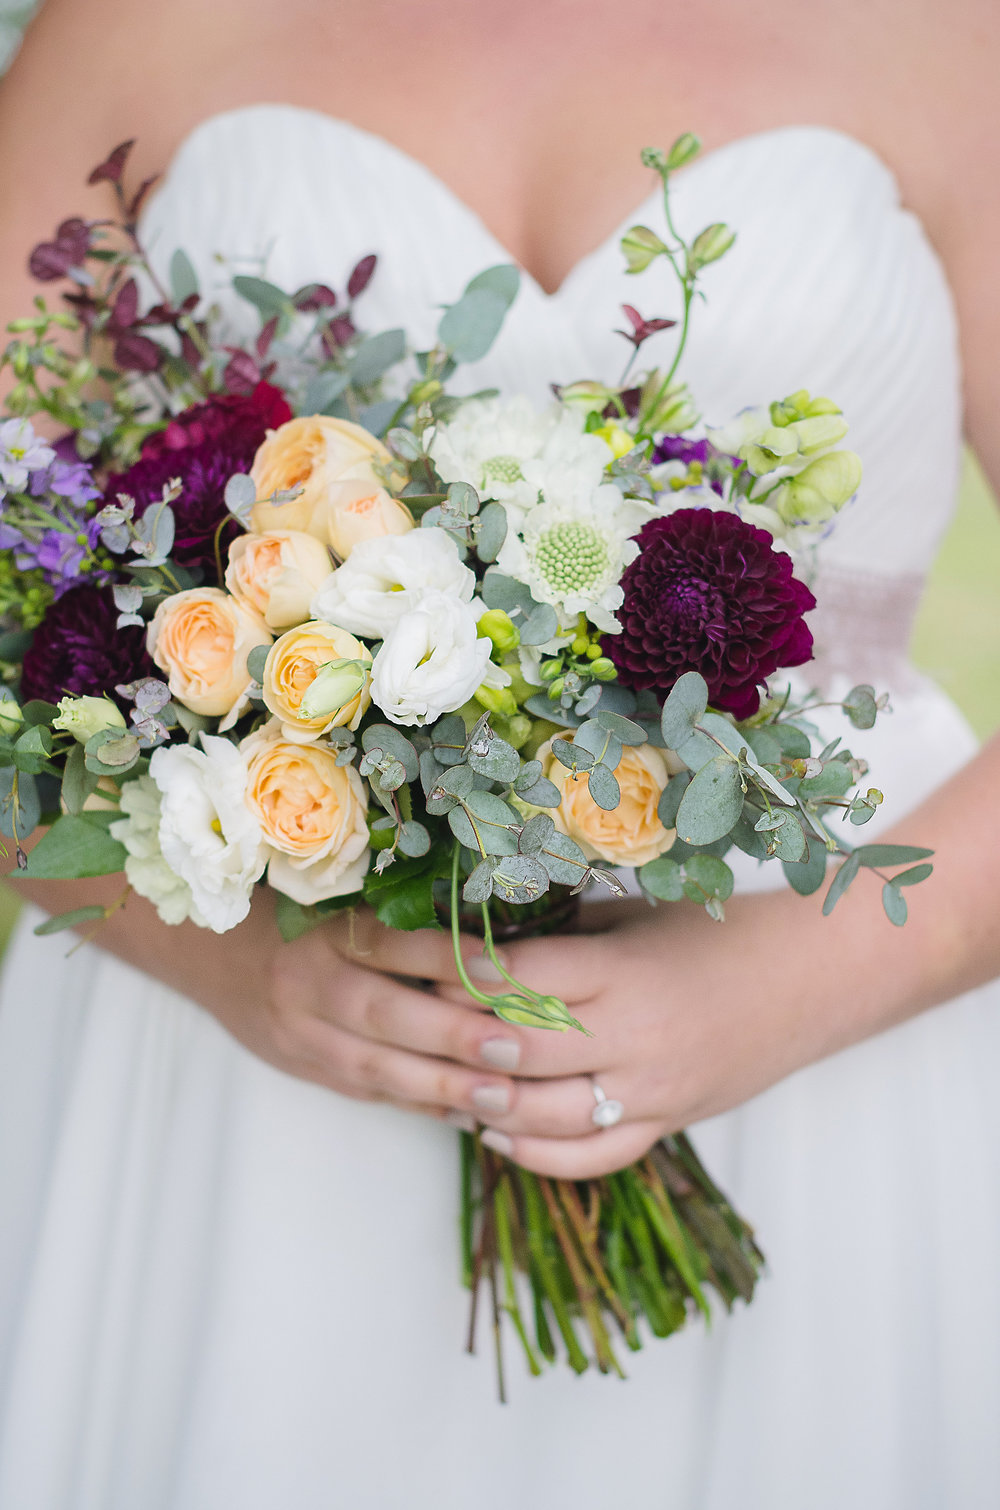 Beautiful Bridal Bouquet by Rhosyn Floral captured by Let There Be Light Photography